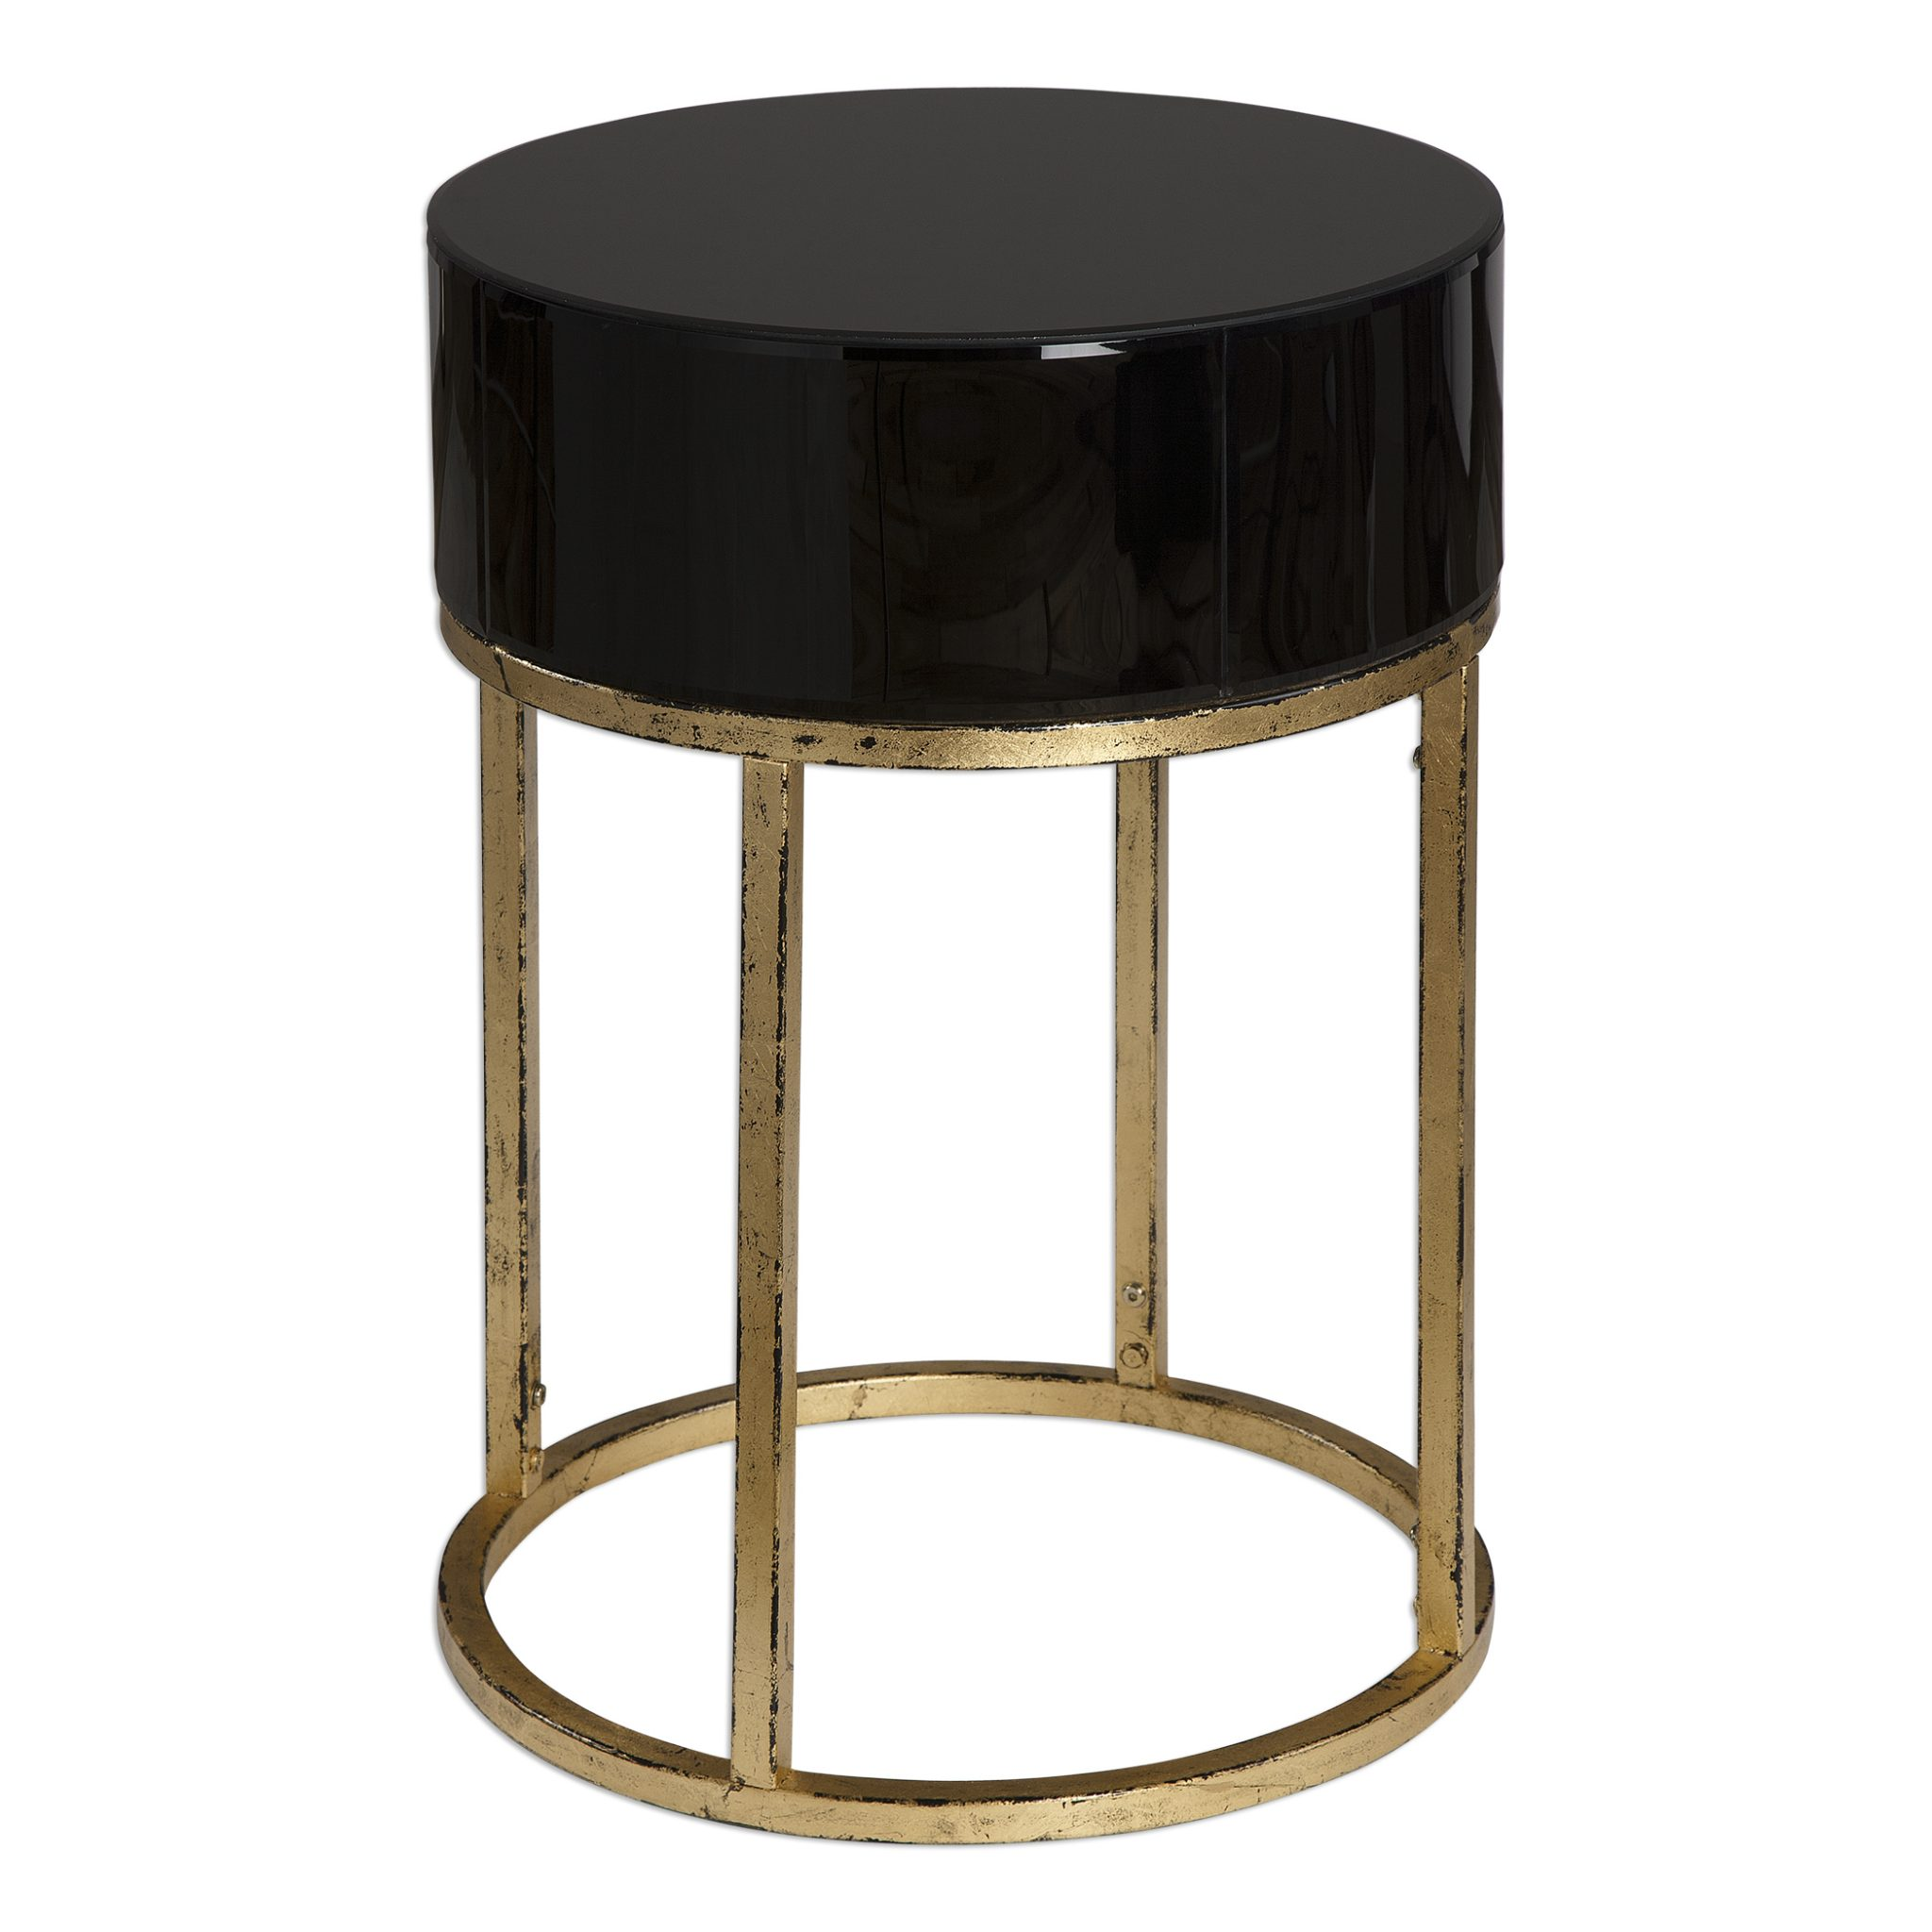 myles curved black accent table furn dining and chairs small metal side ethan allen round end gray marble coffee nautical style tables outdoor storage box lamp diy base piece